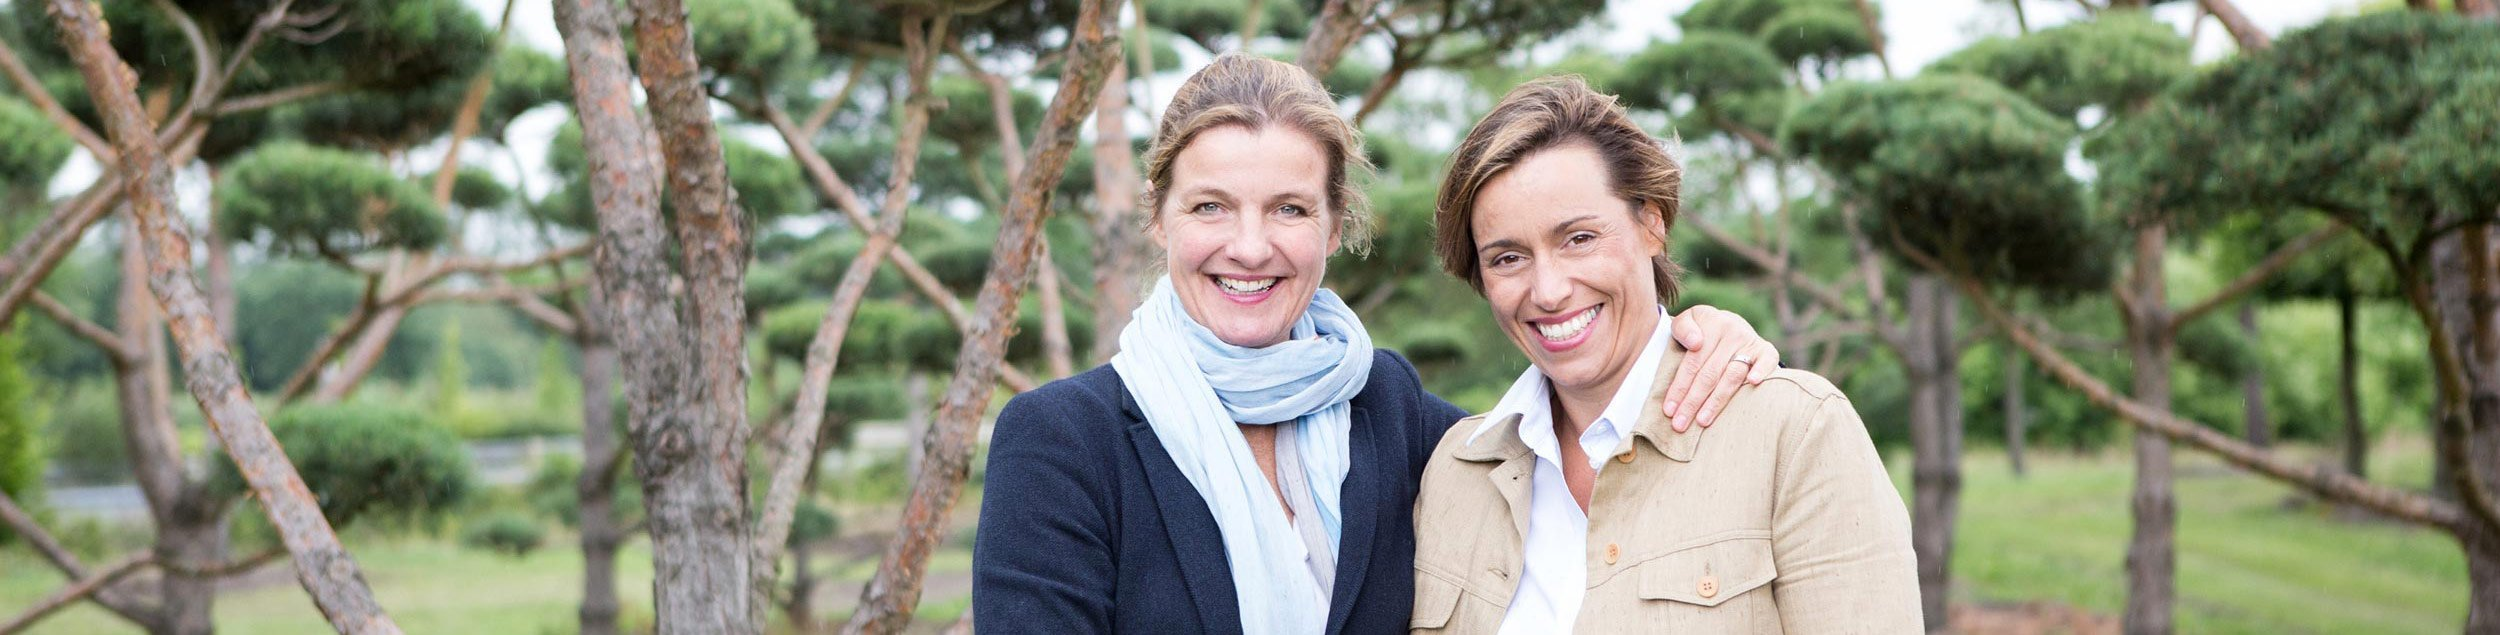 International Tree Broker Katharina von Ehren und Maike Rohde